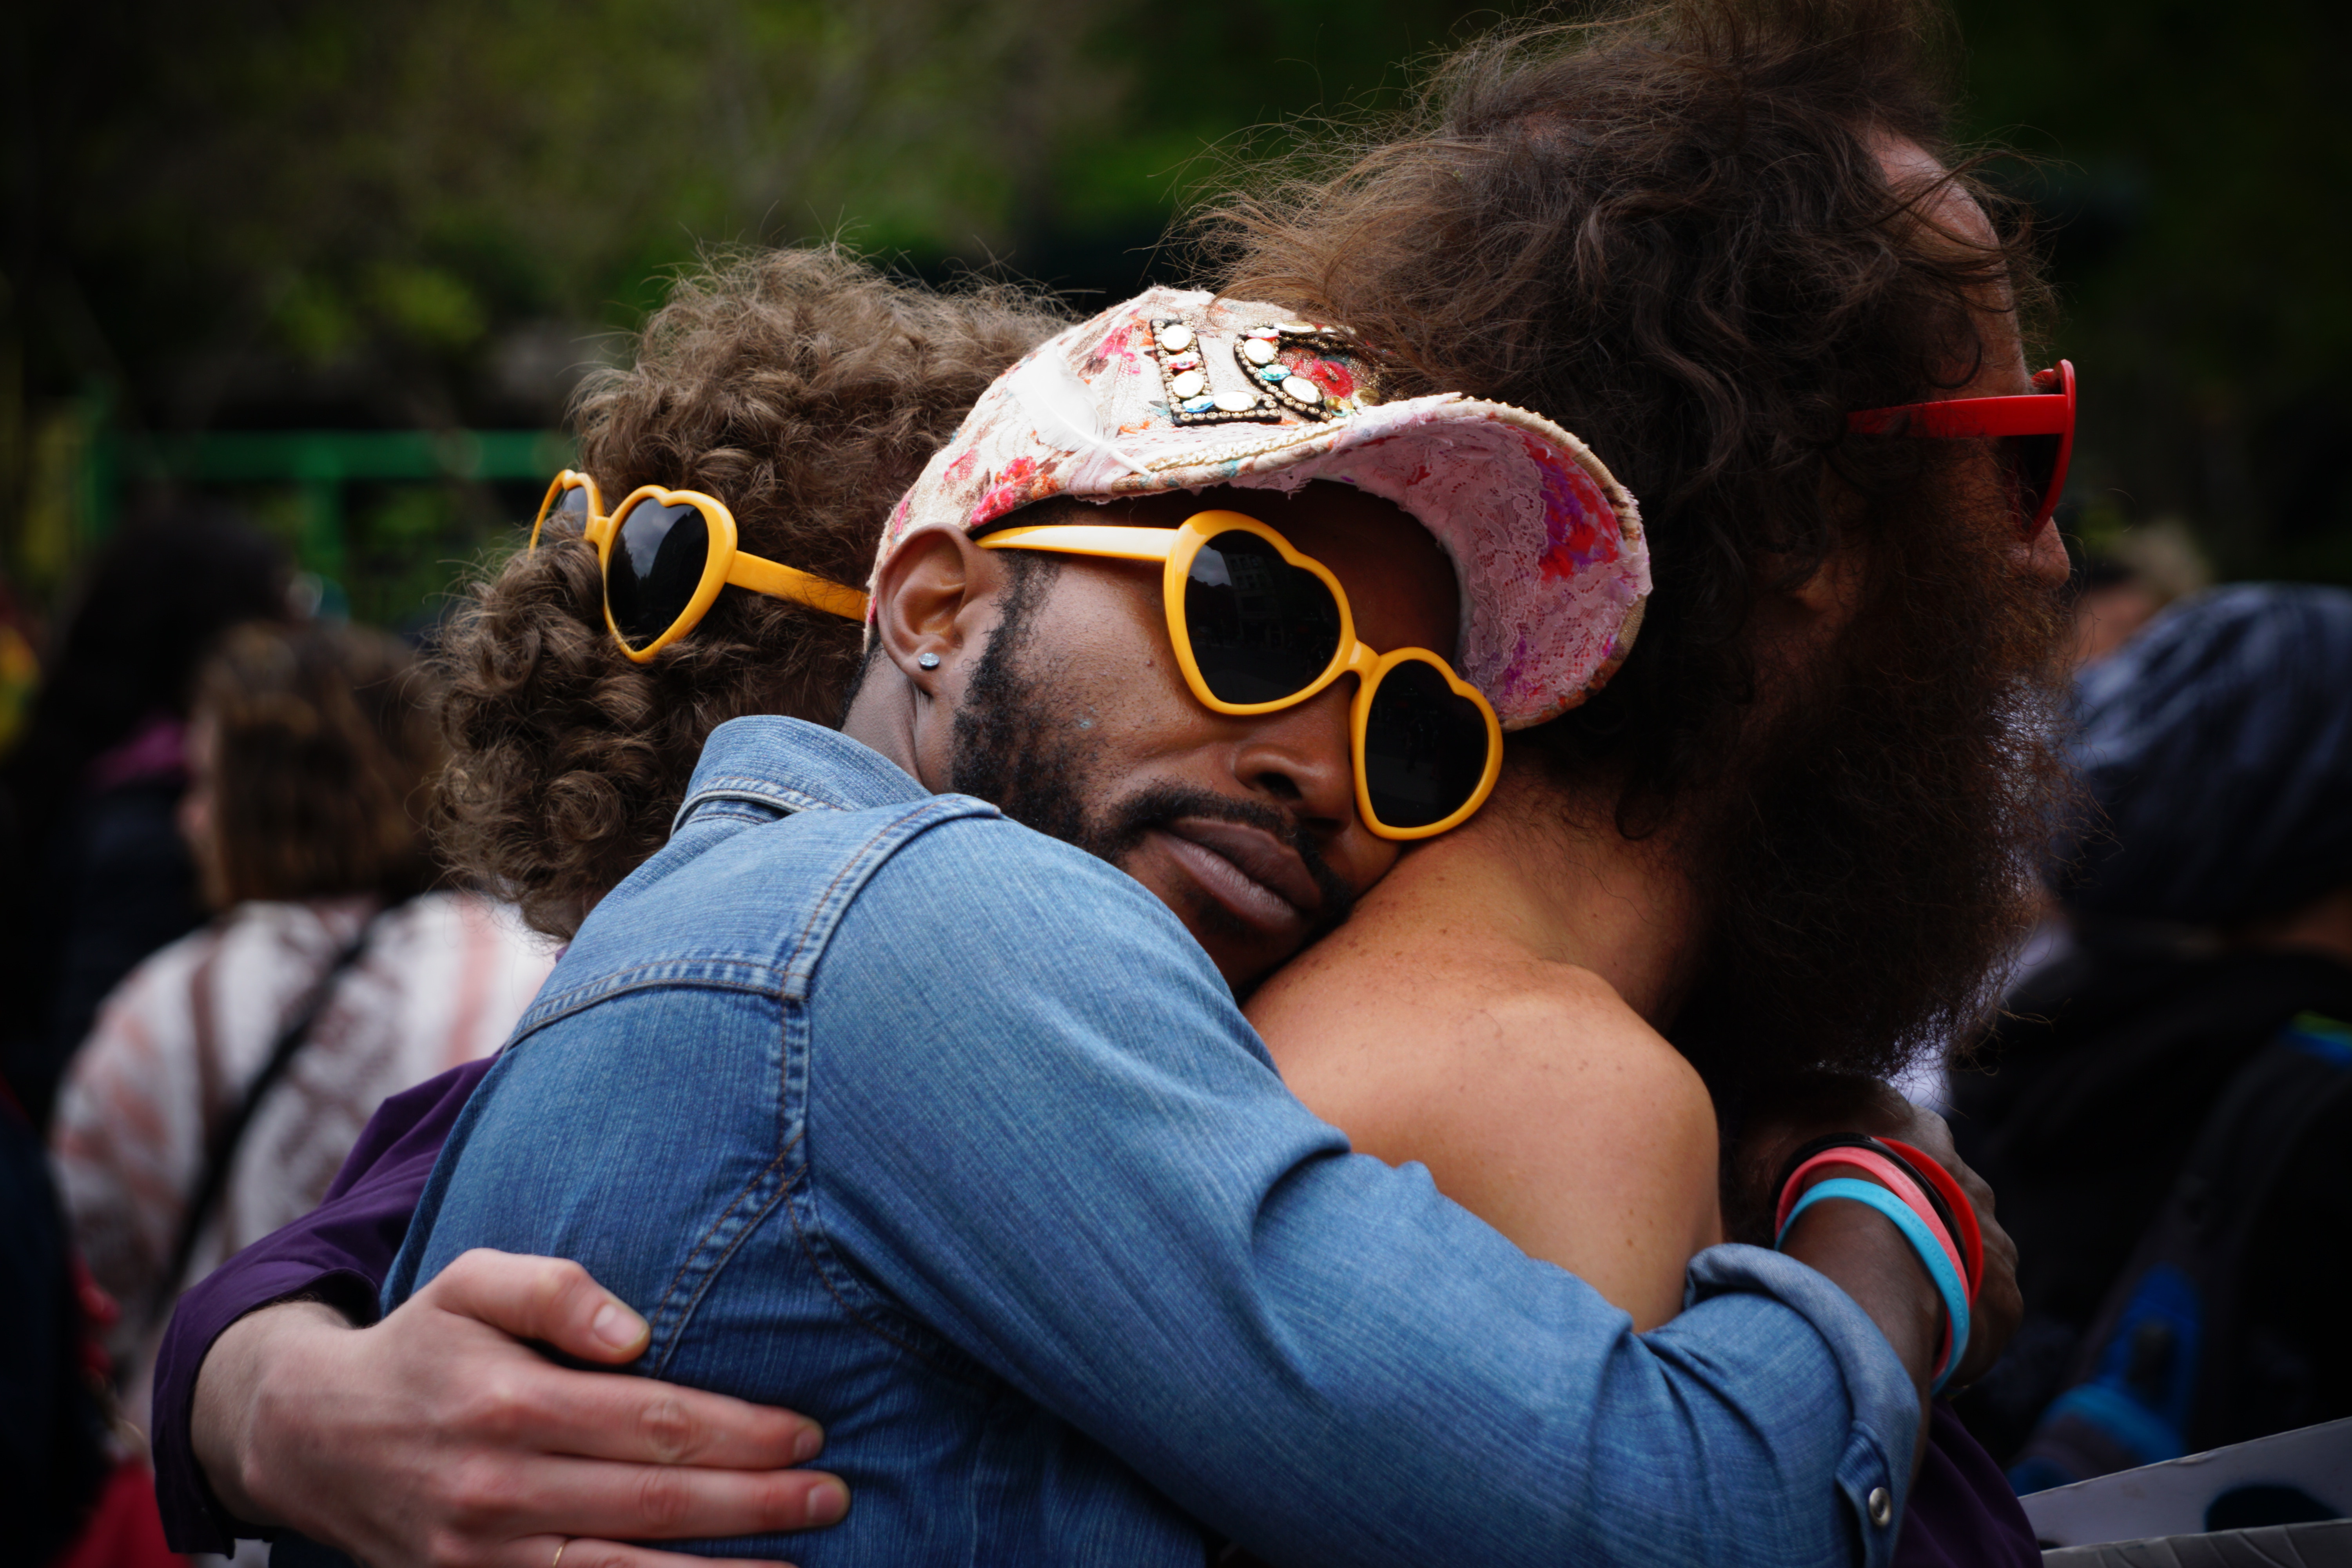 men hugging wearing yellow glasses